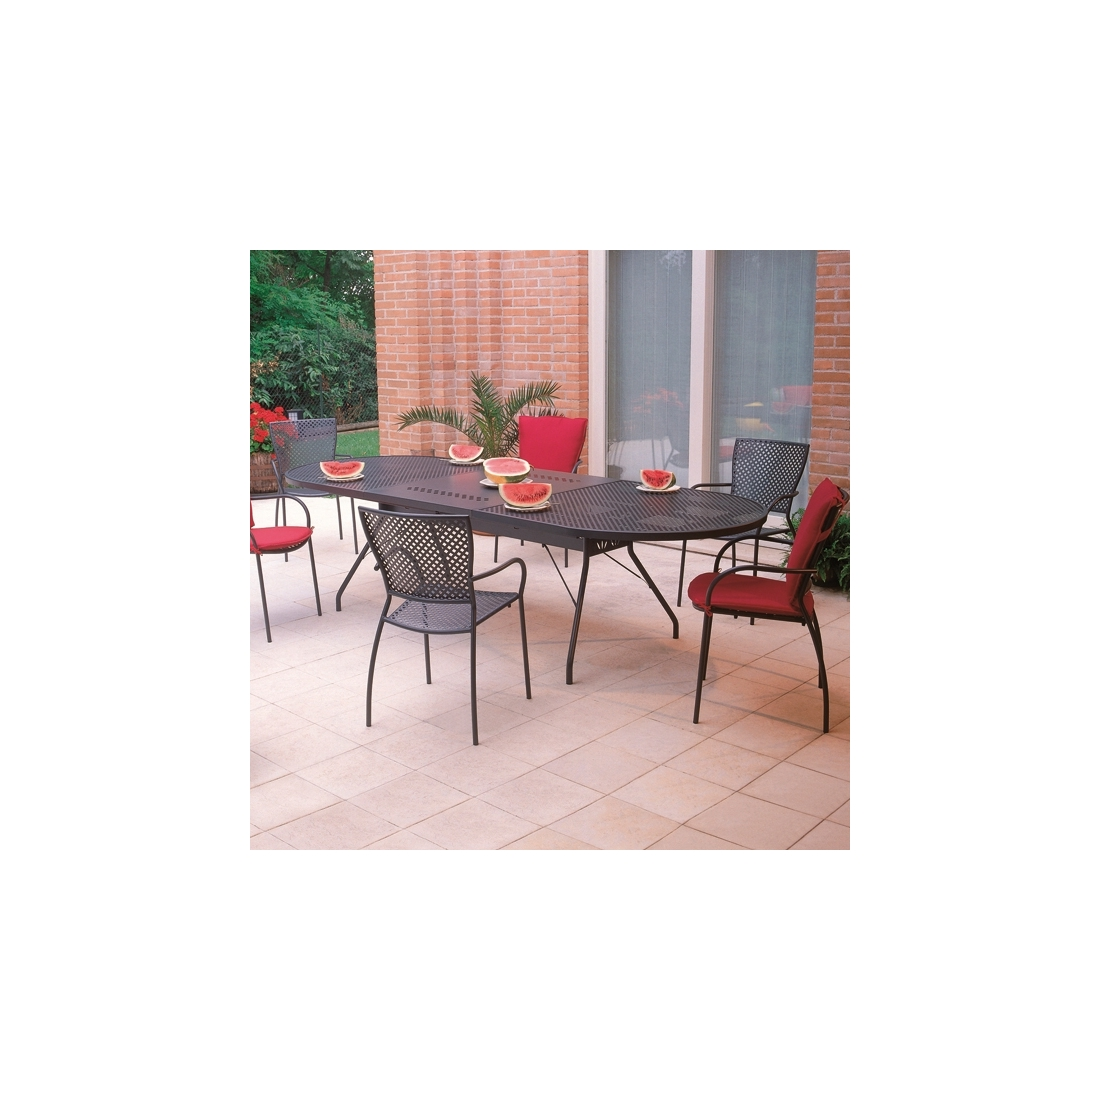 Fabricant de mobilier de jardin mobilier exterieur table for But mobilier de jardin